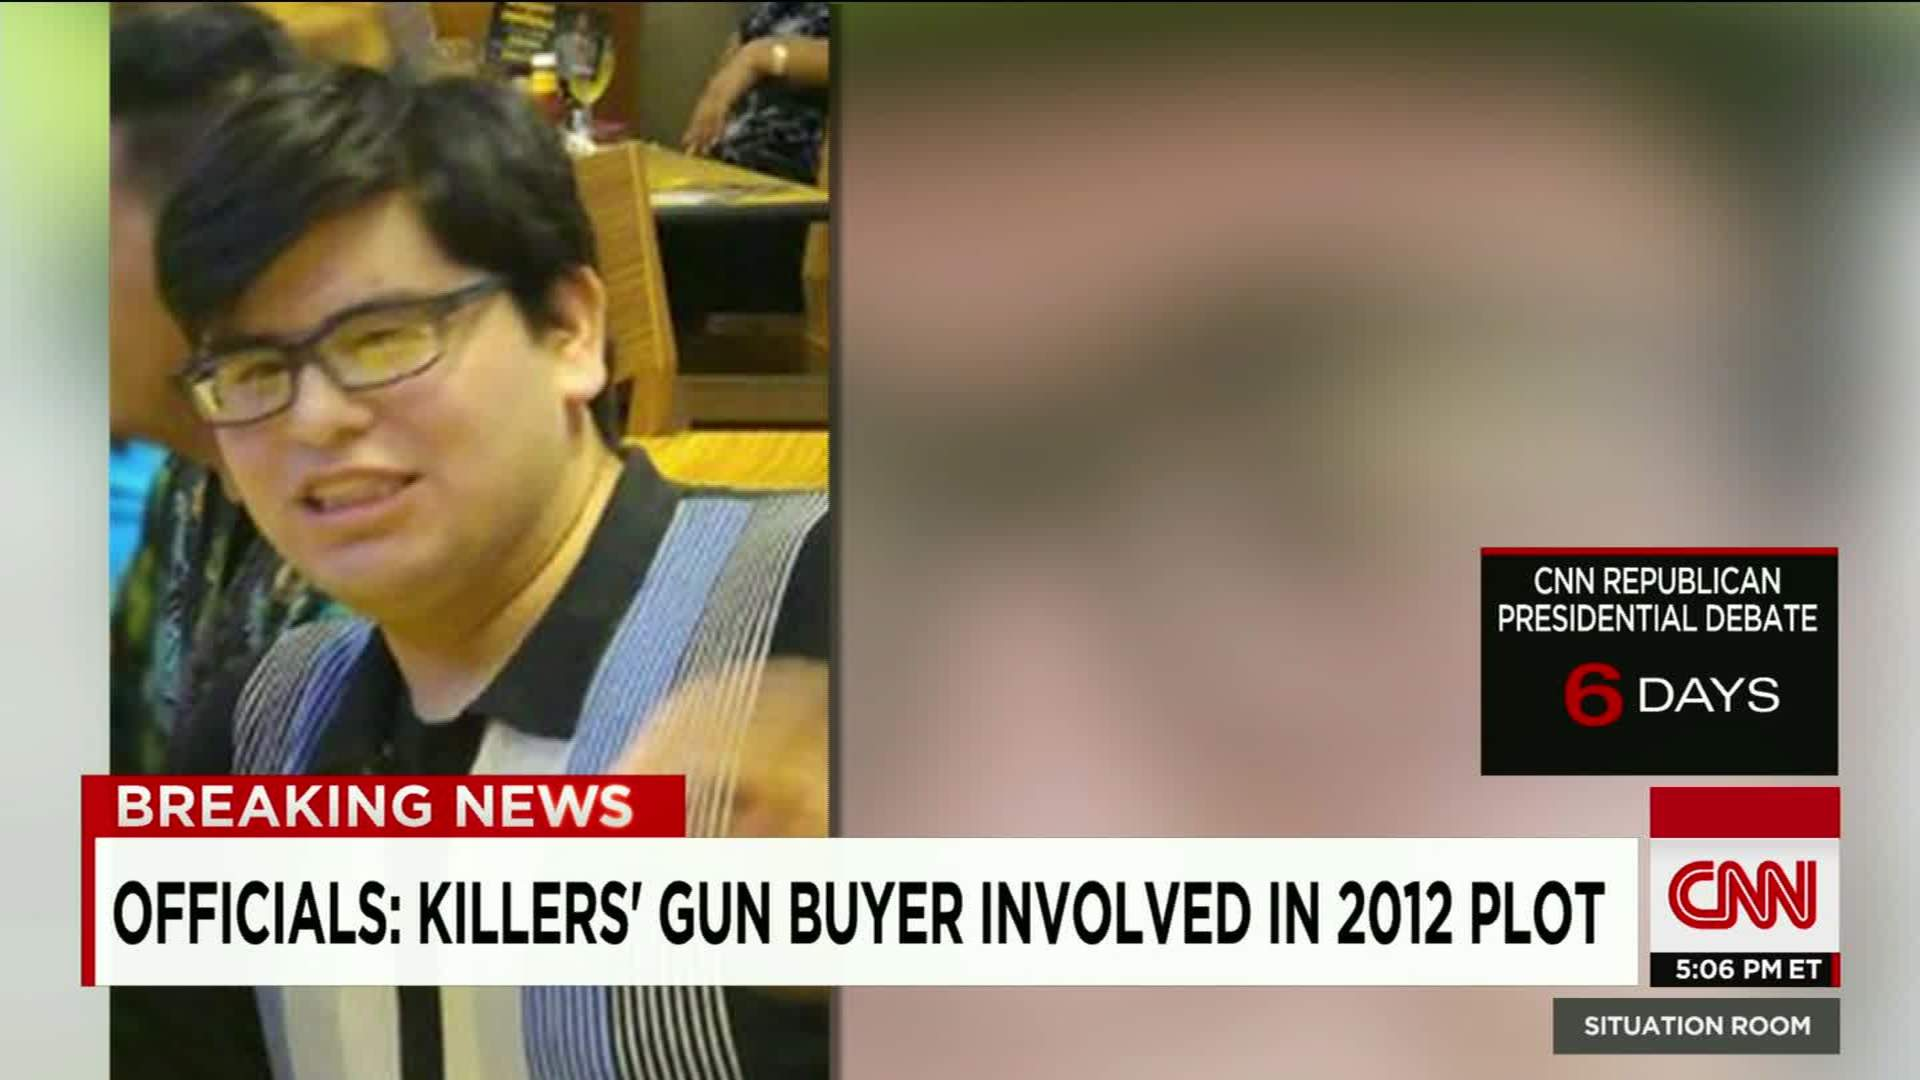 Man who bought guns used by San Bernardino terrorists sentenced to 20 years in federal prison